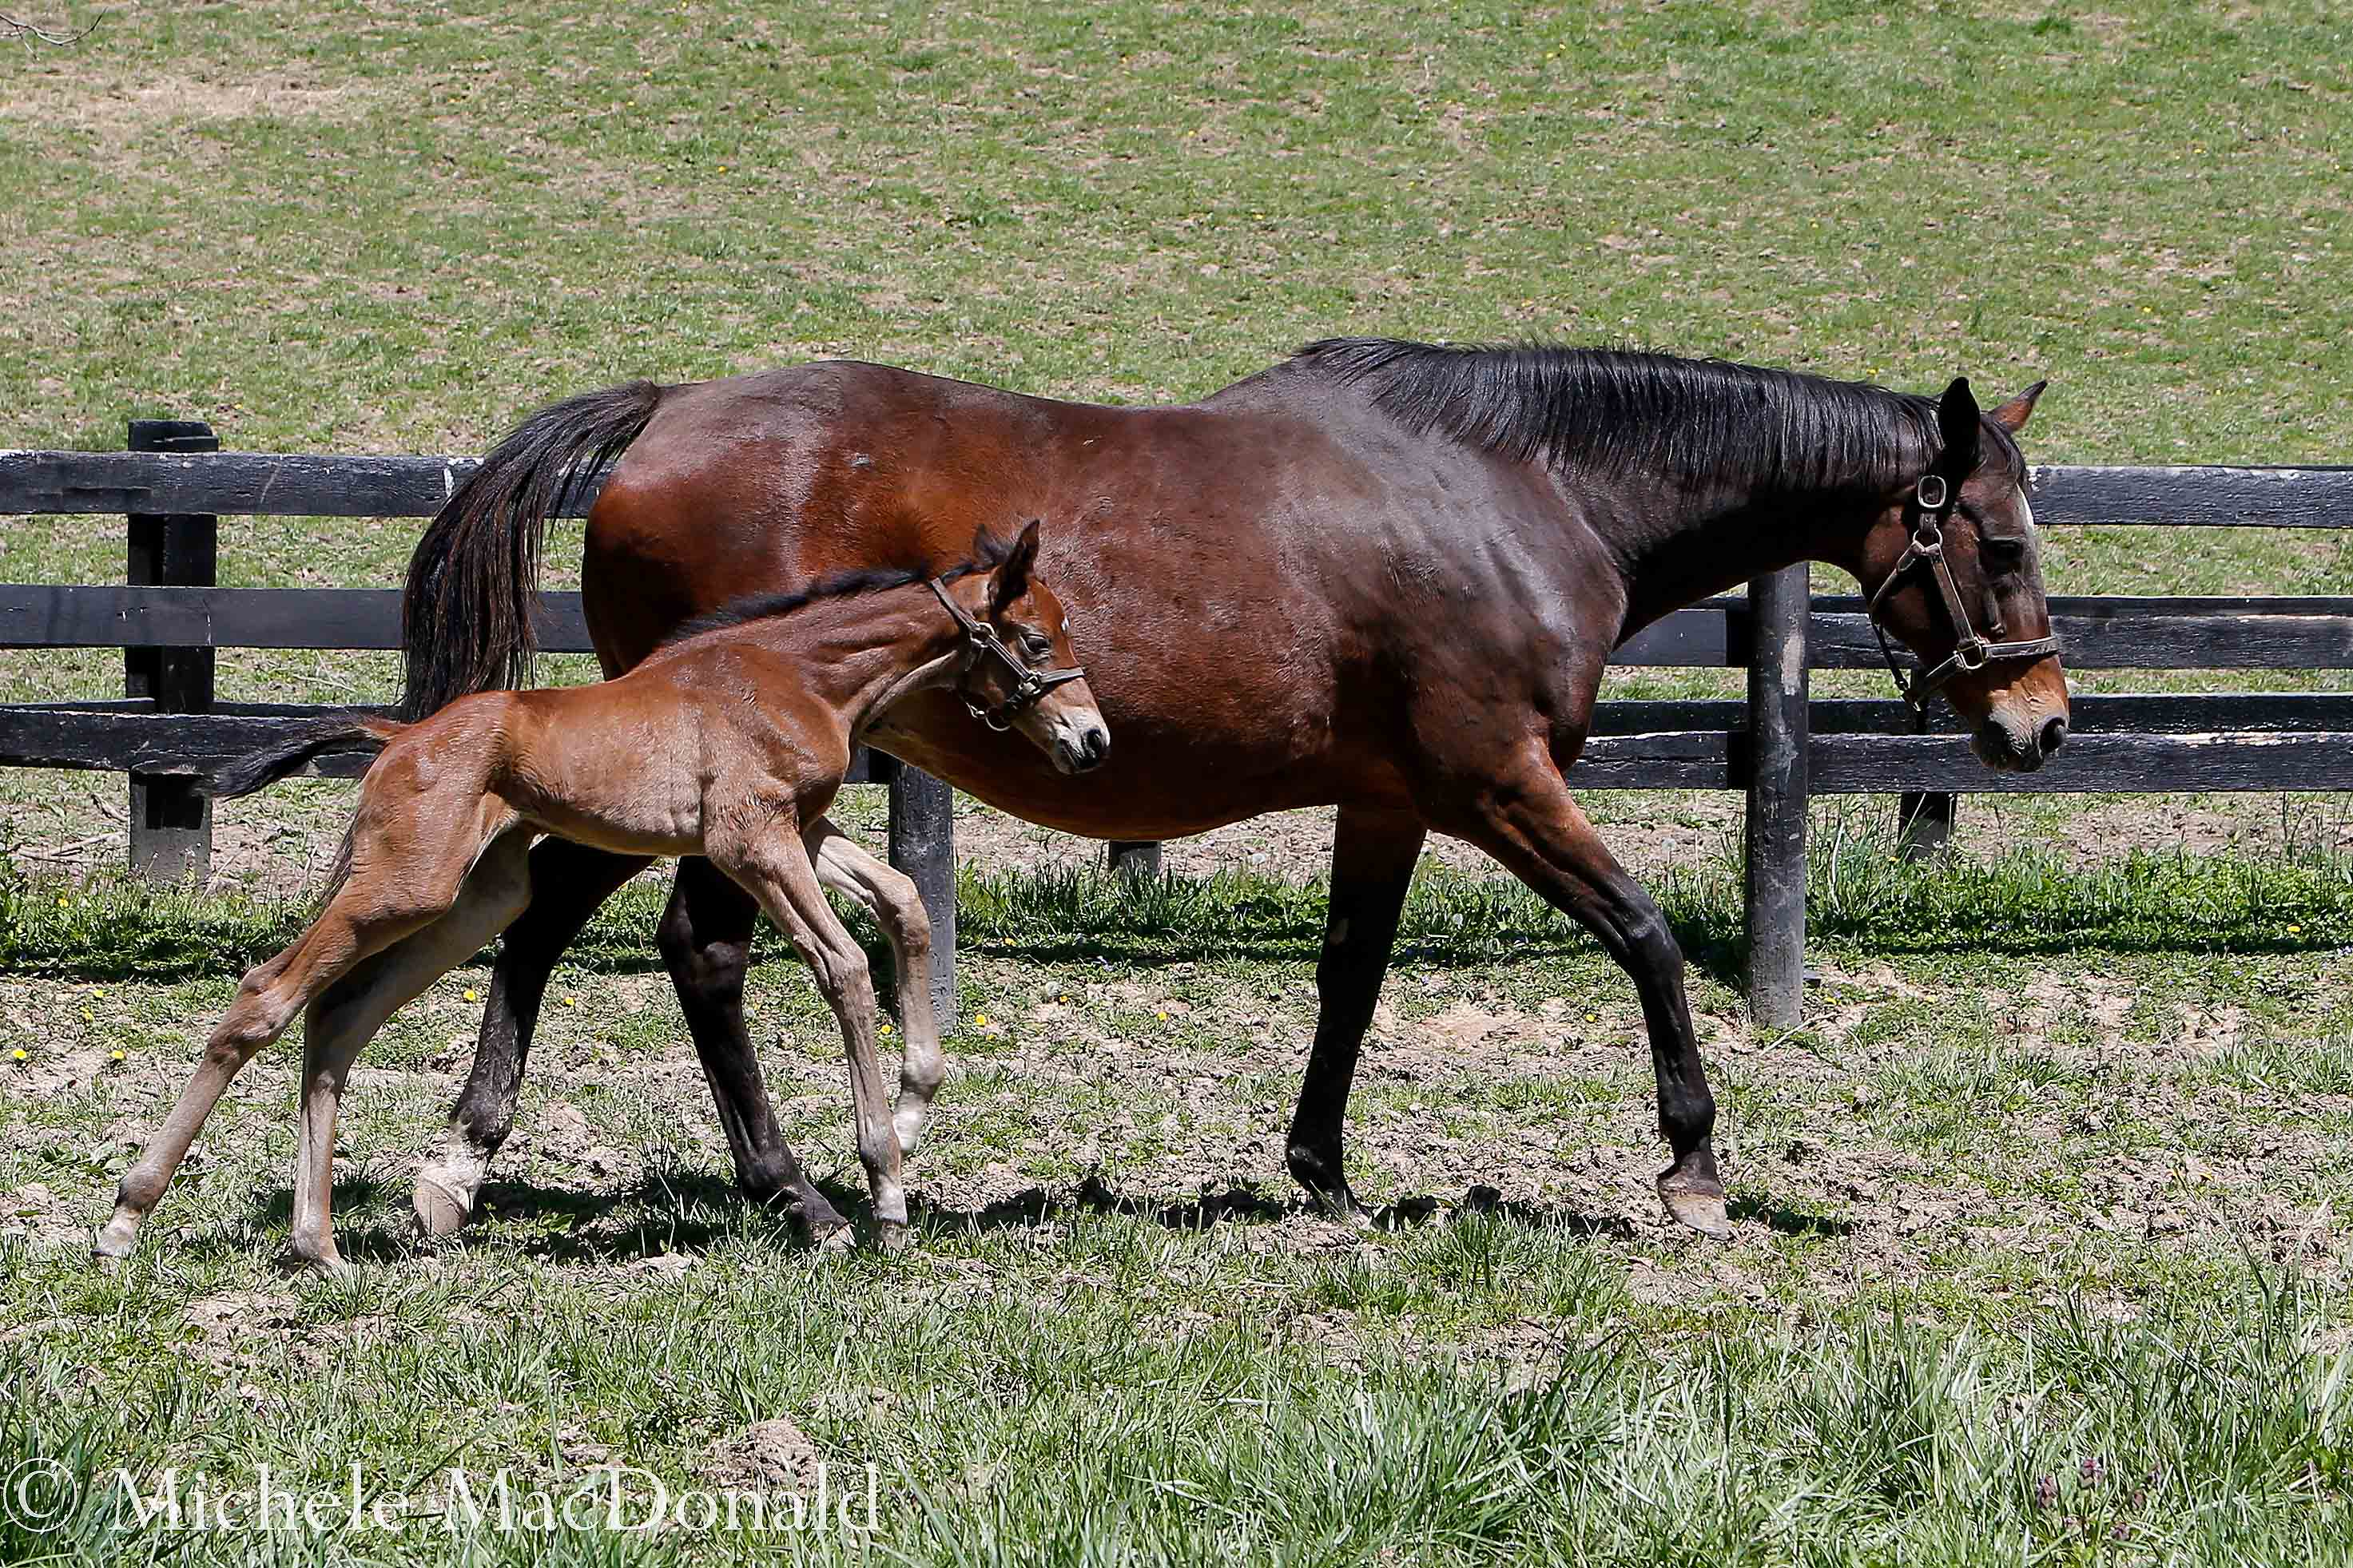 Leslie's Lady and her new foal, who is well made, moves like silk and seems to possess the serene nature of her sire. Photo: Michele MacDonald